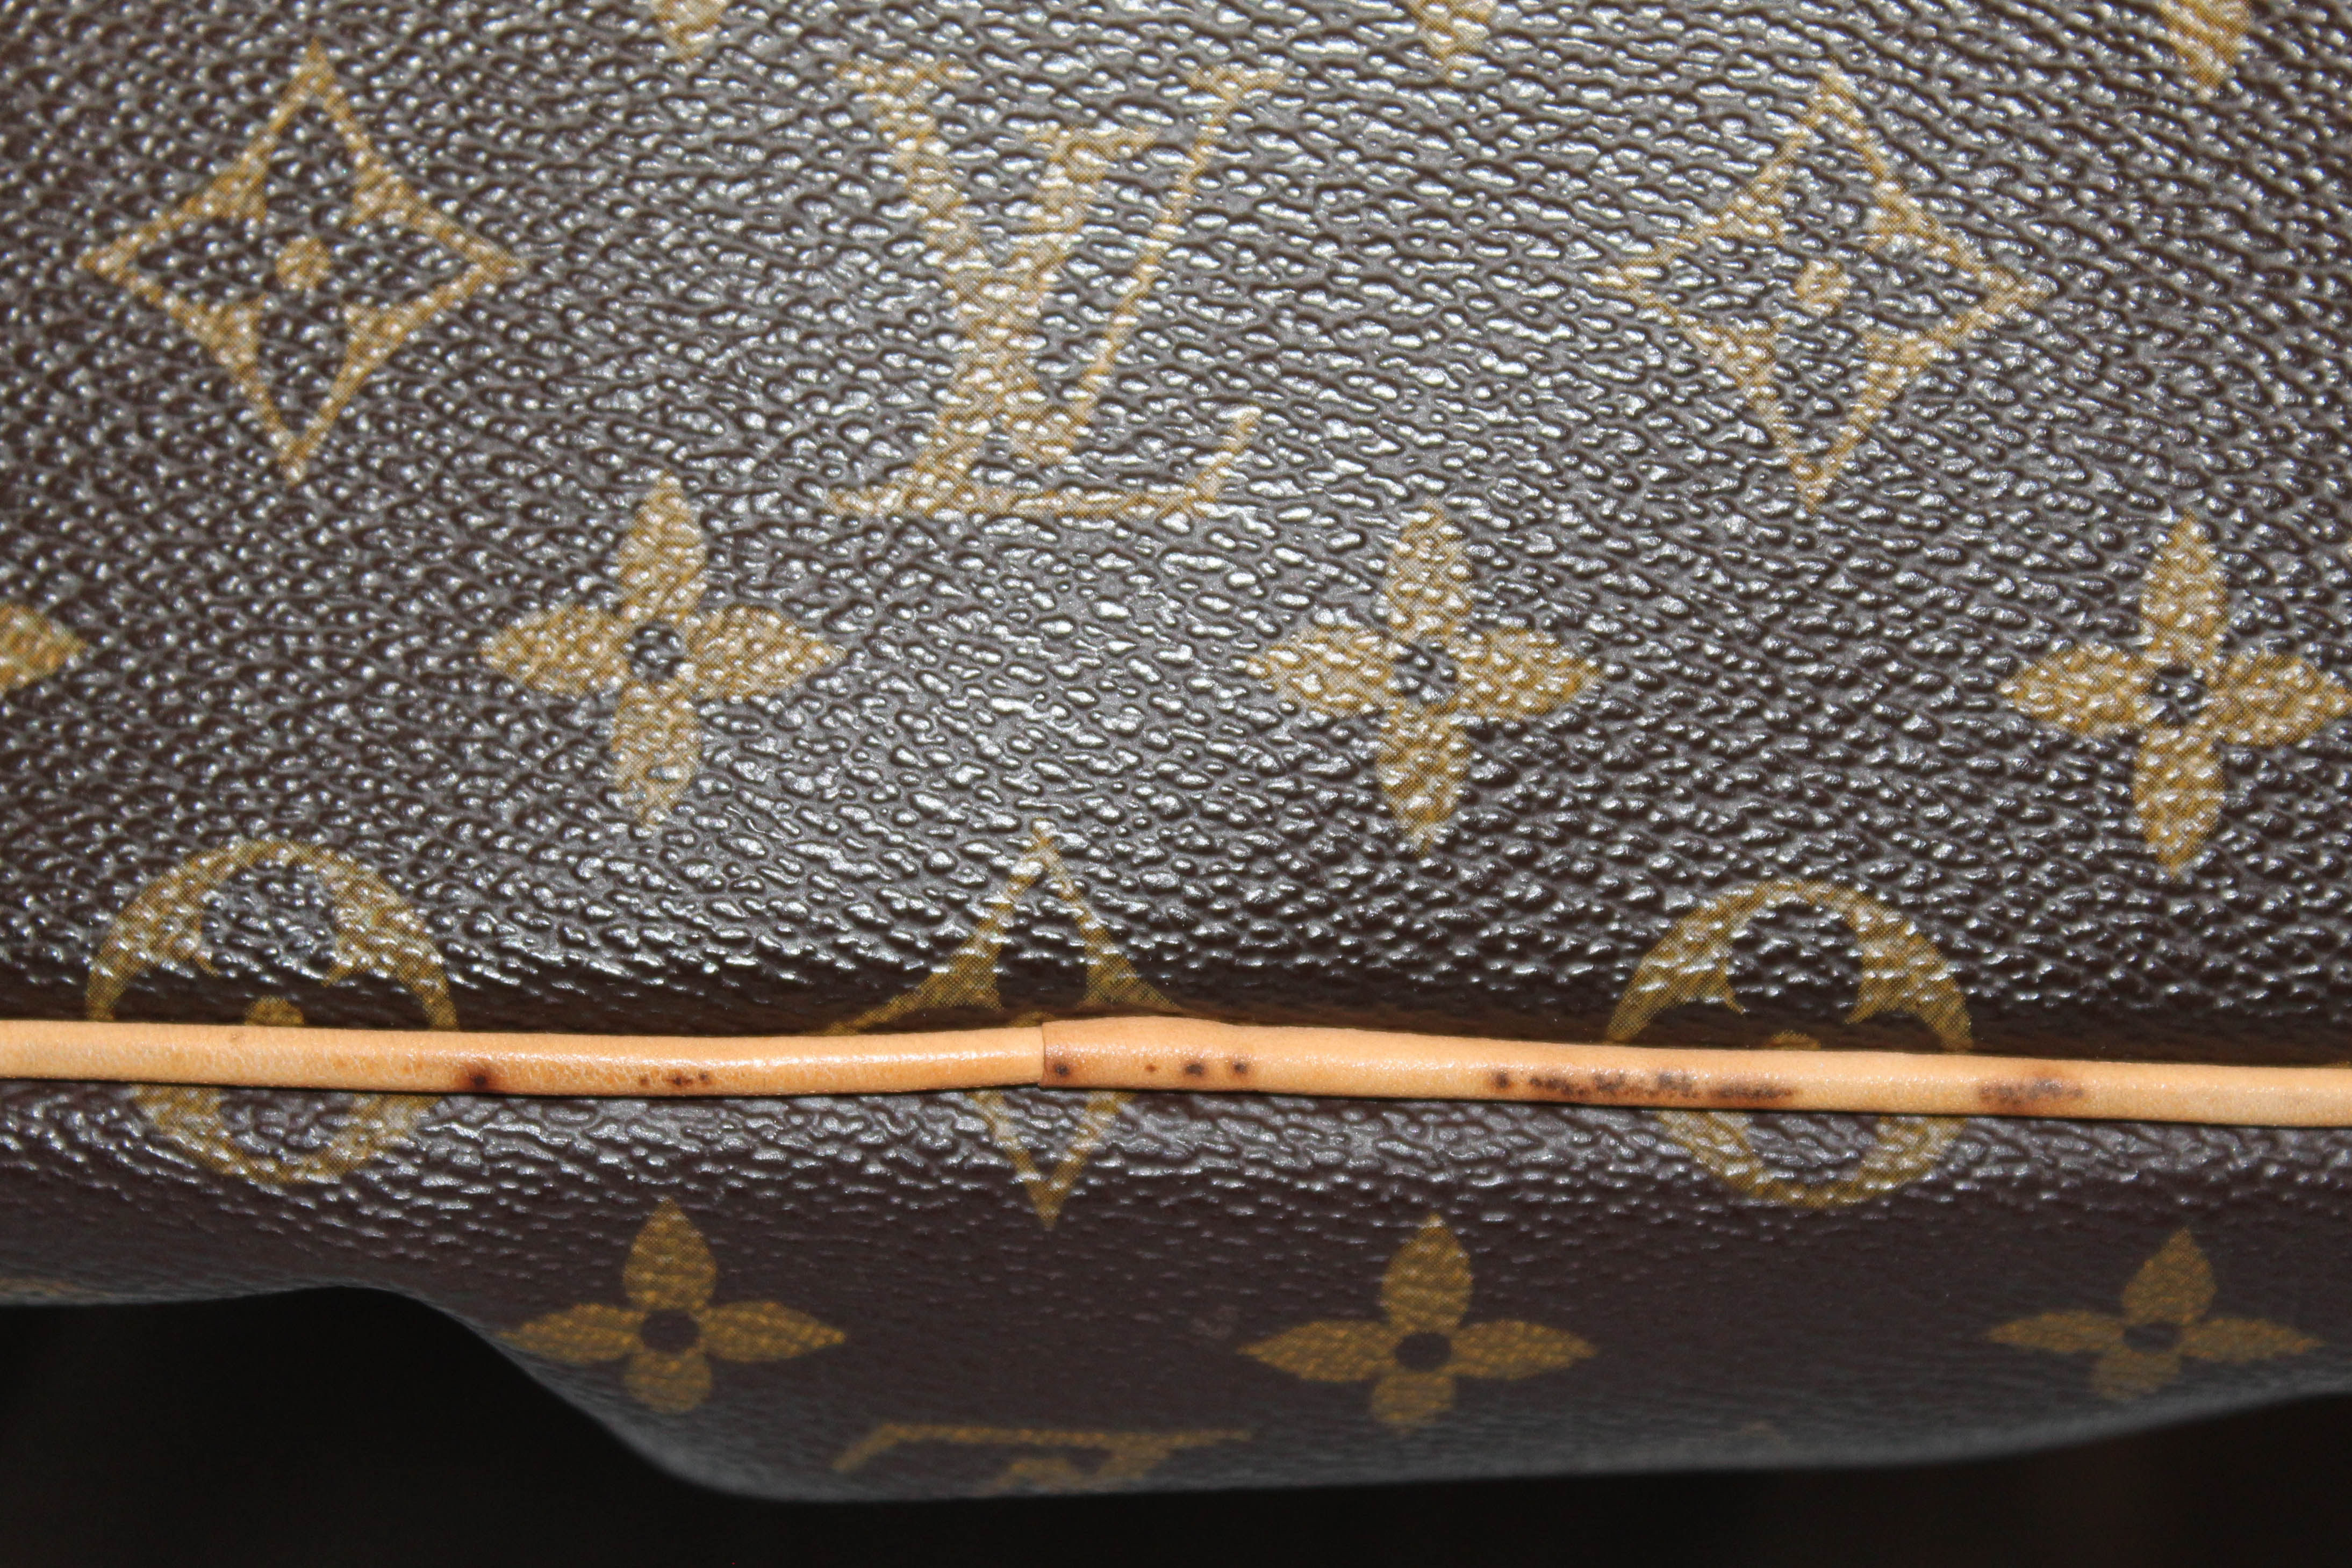 Authentic Louis Vuitton Monogram Canvas Palermo PM Handbag